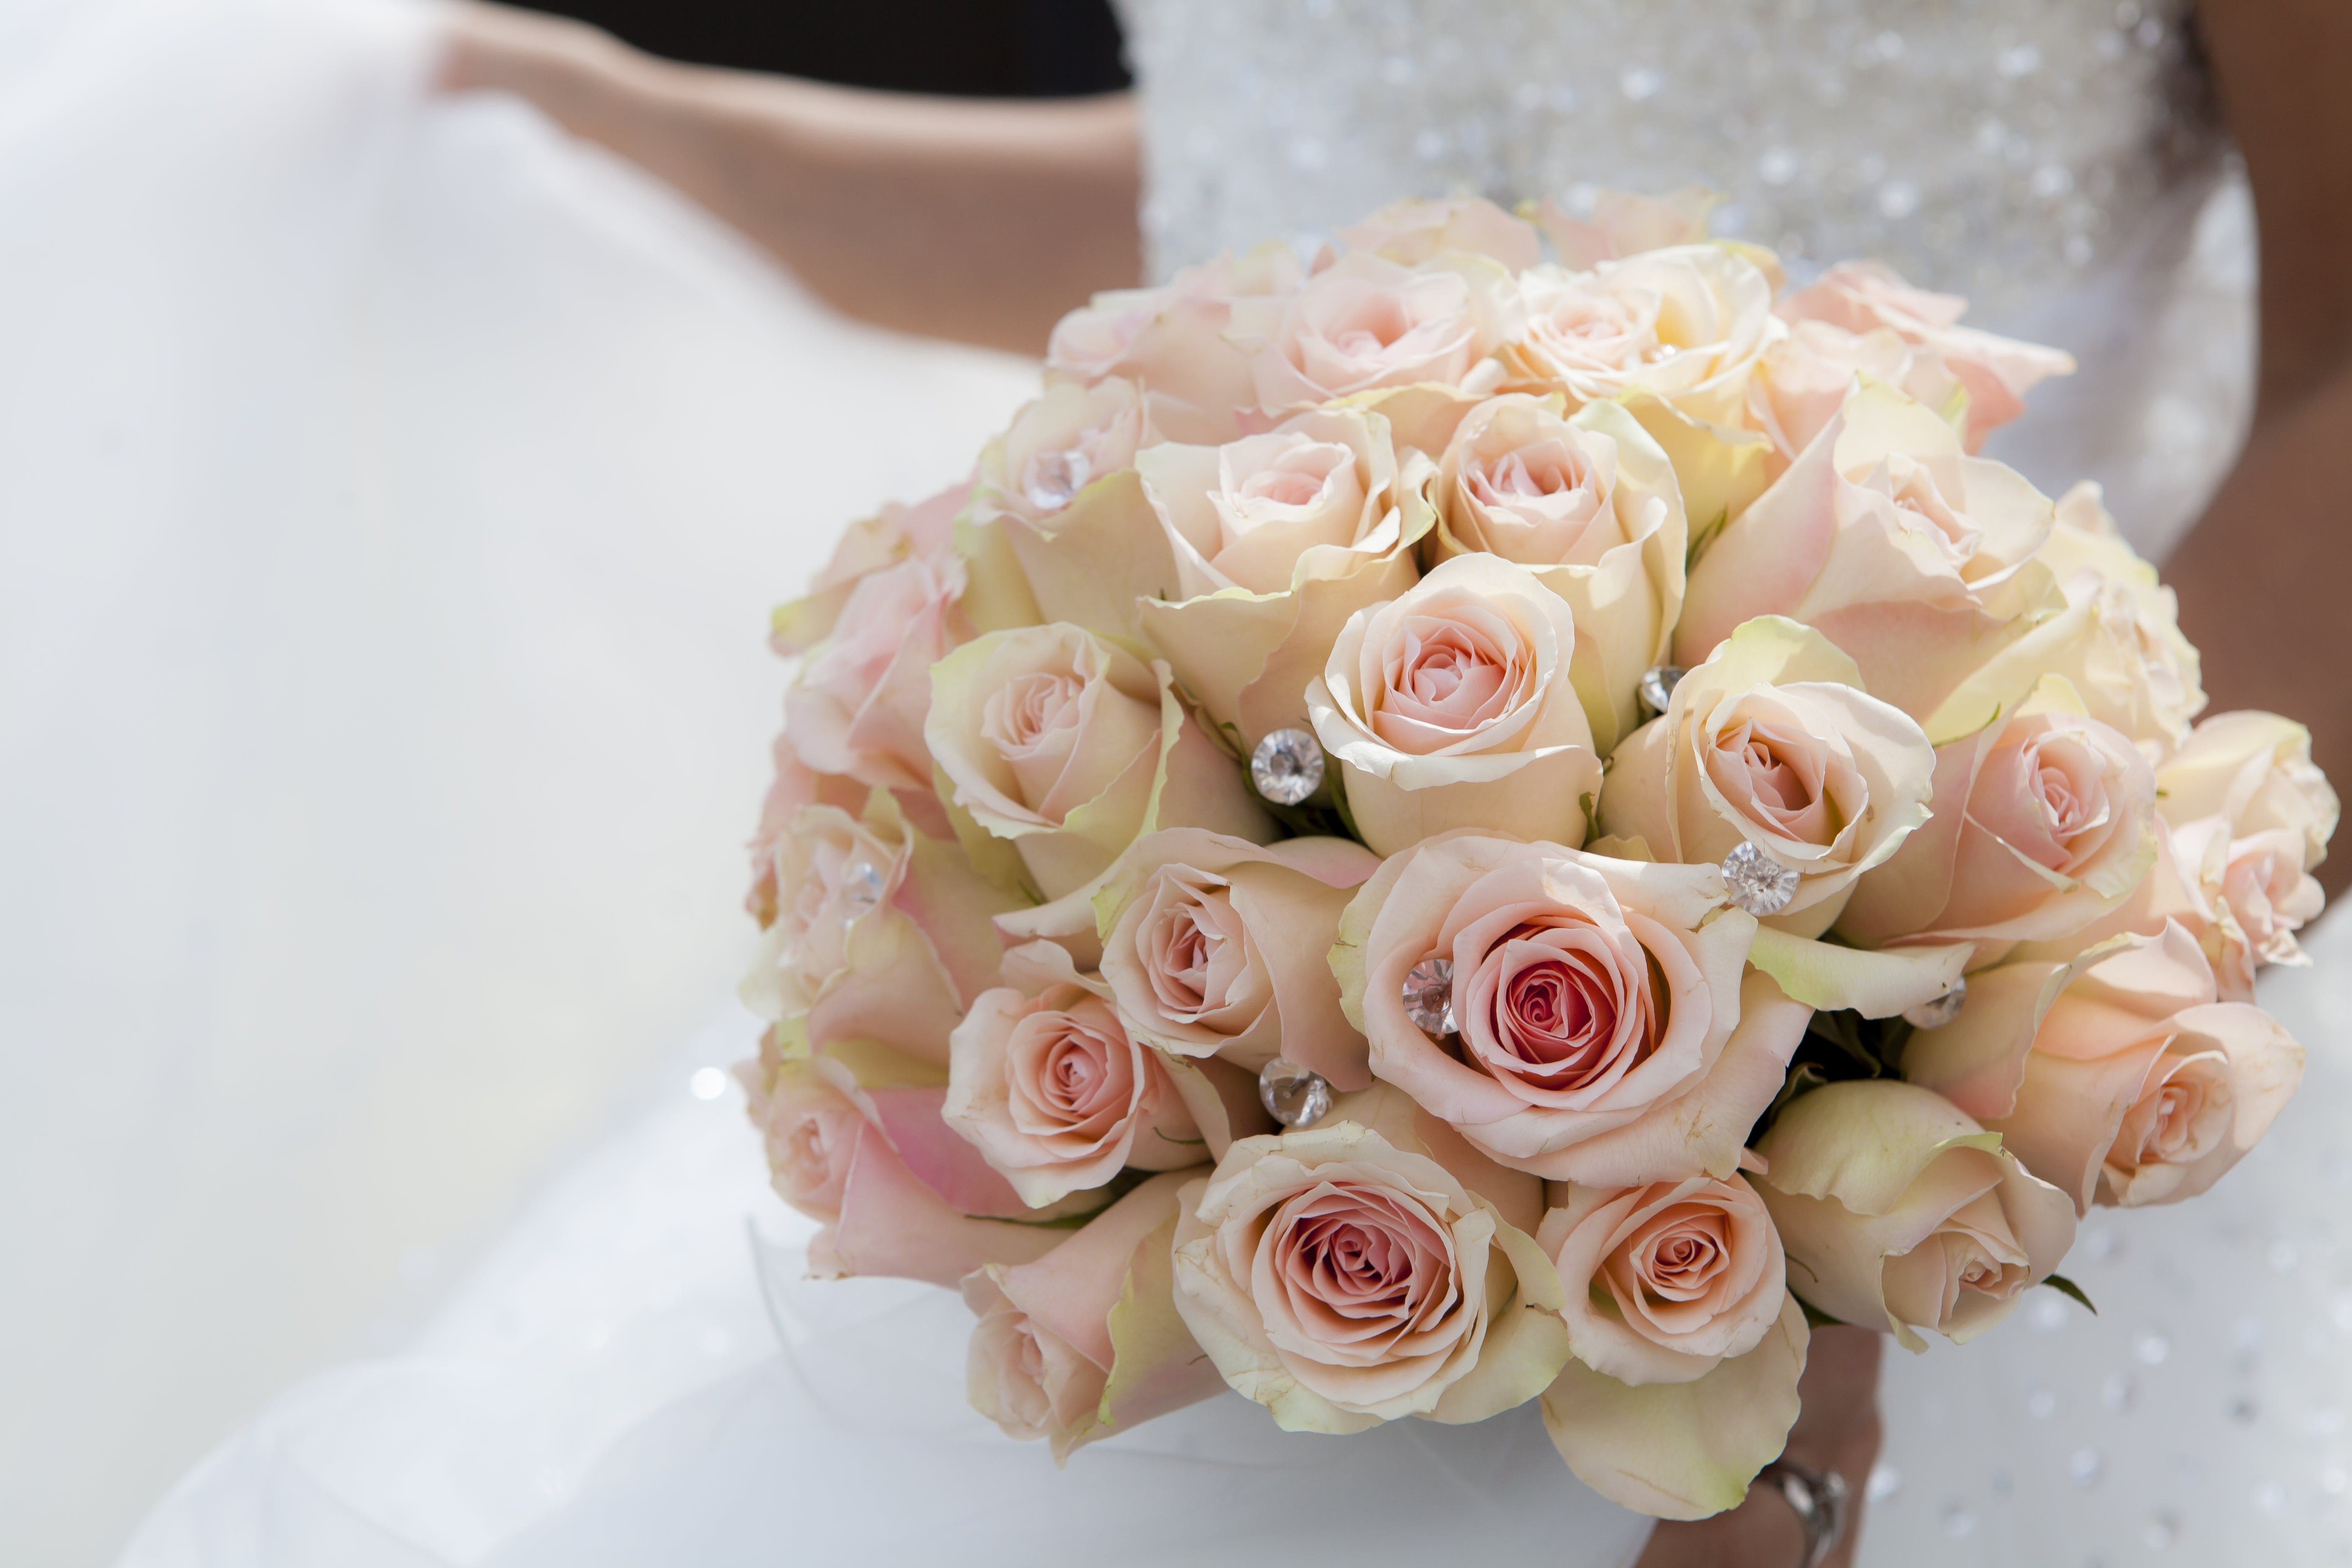 Close-up of Pink Rose Bouquet